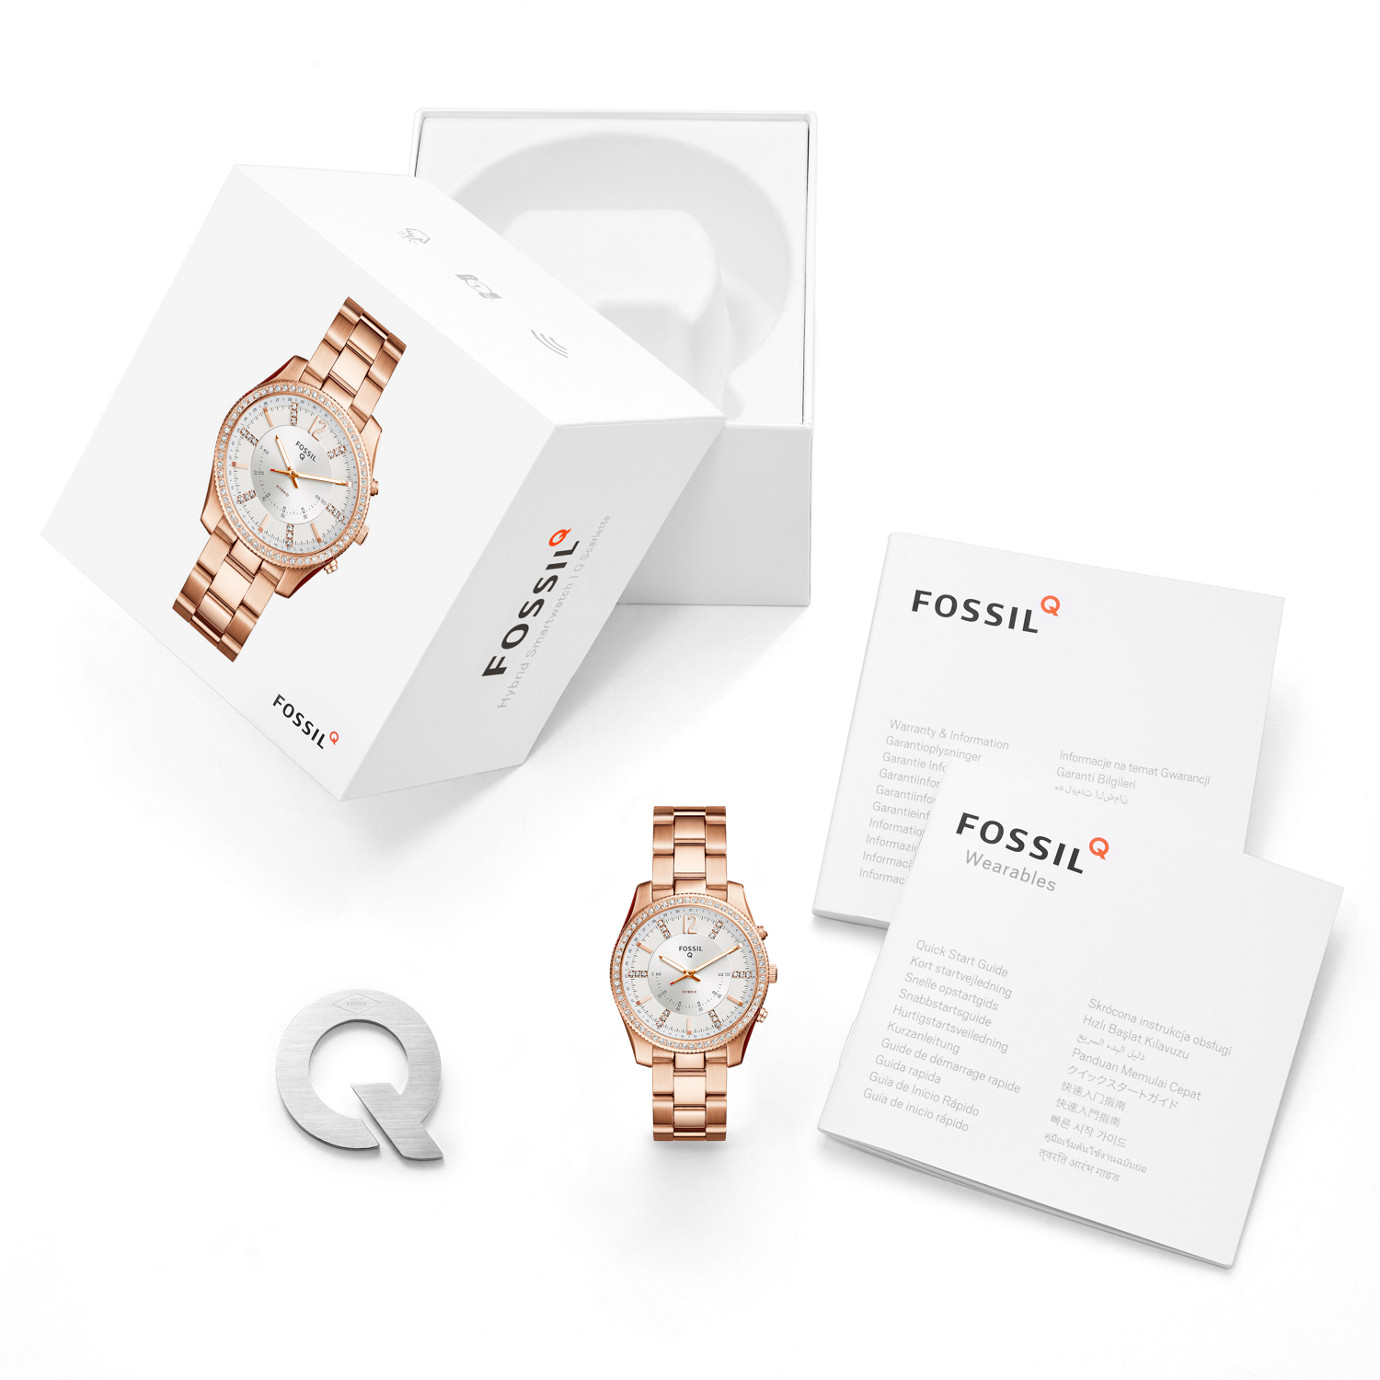 6ff2170d6 ... Hybrid Smartwatch - Q Scarlette Rose Gold-Tone Stainless Steel